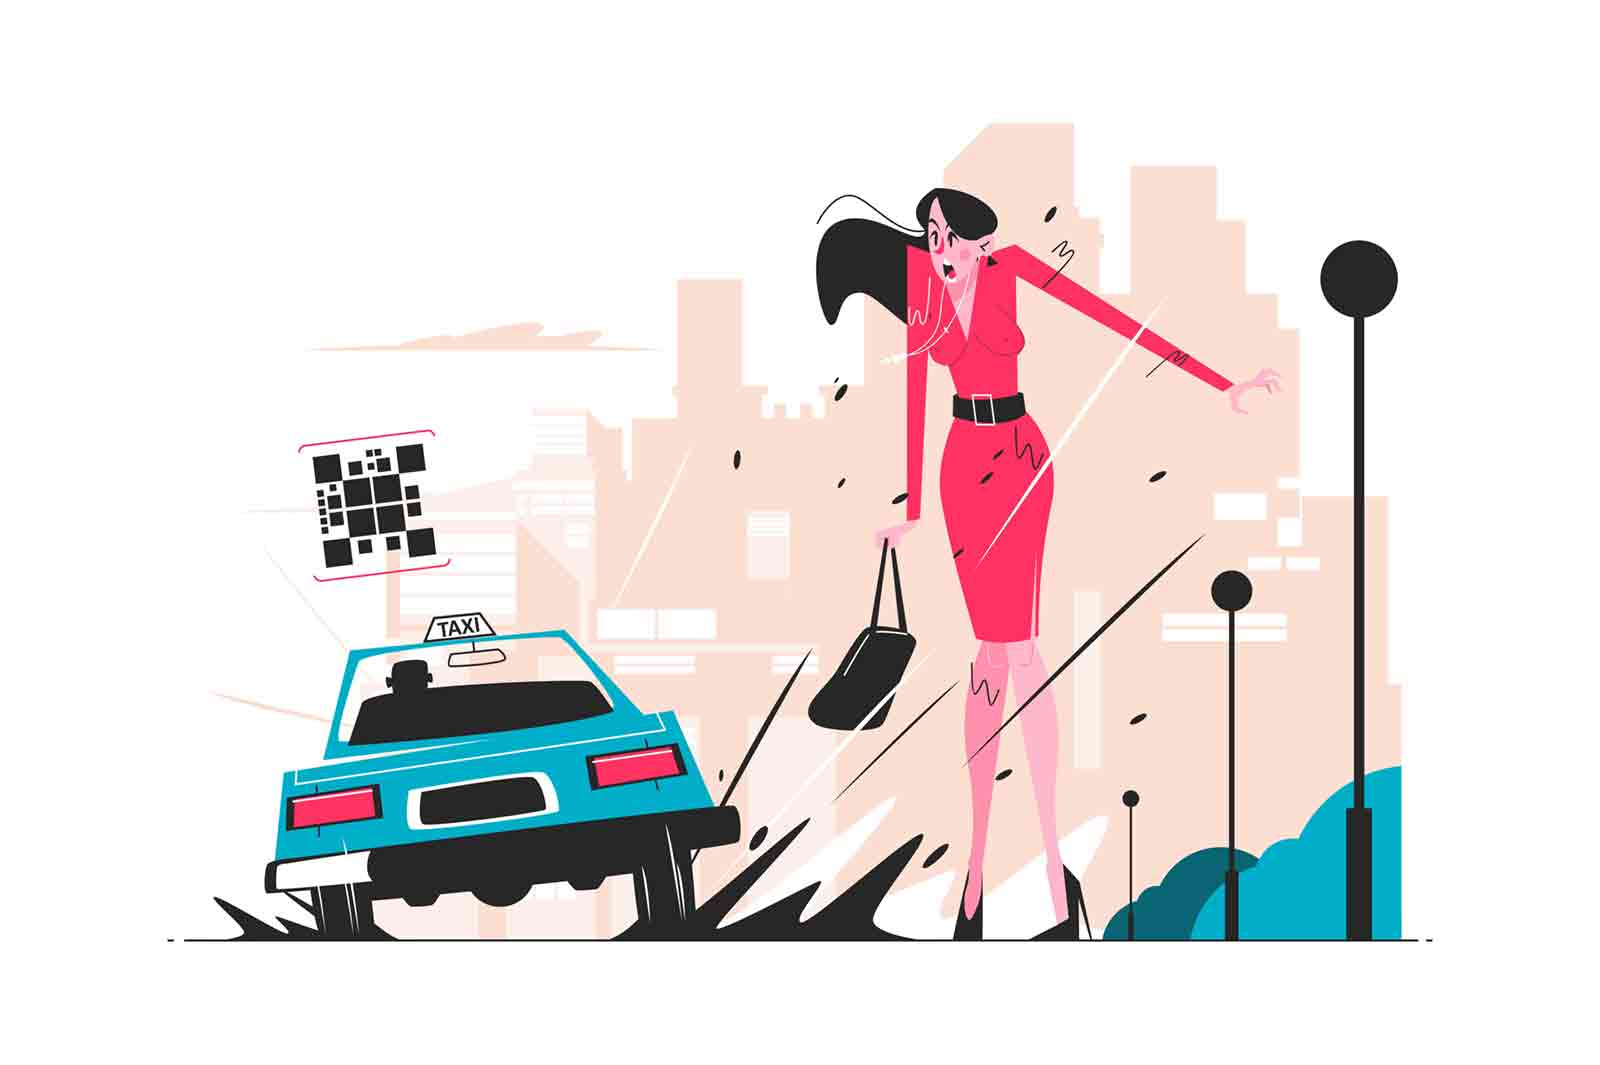 Taxi car splashing puddle over woman vector illustration. Vehicle poured mud to lady in red dress flat style design. Driver boor concept. City landscape on background